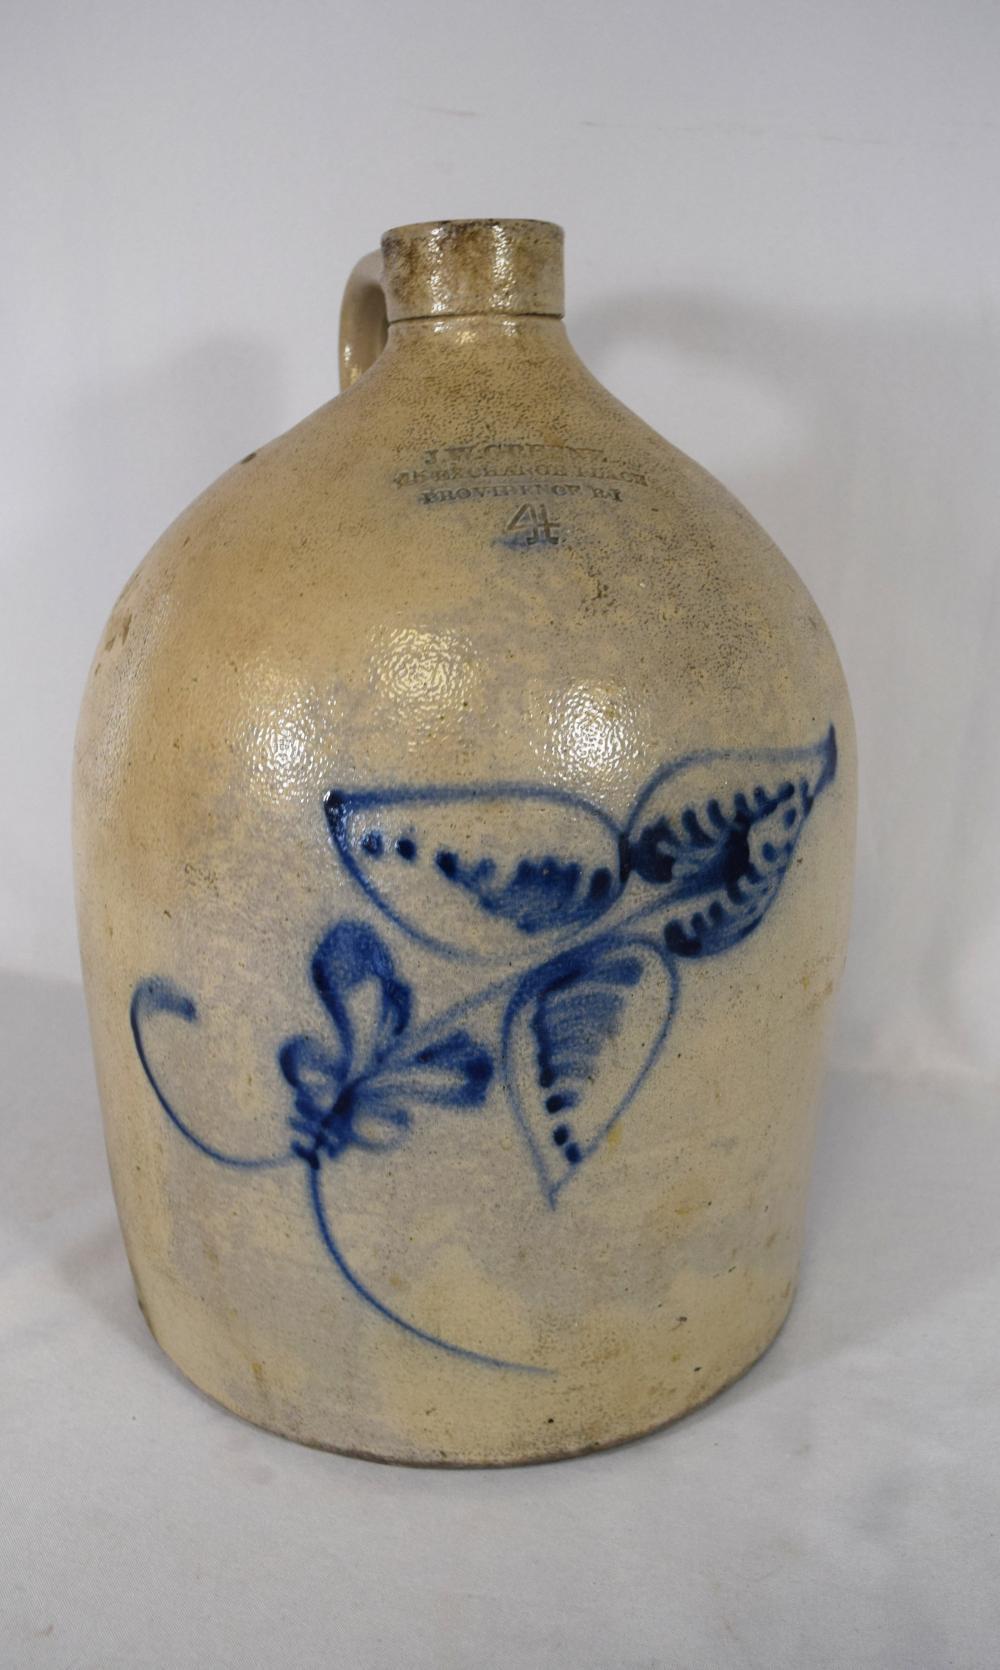 4 GALLON COBALT BLUE DECORATED JUG: